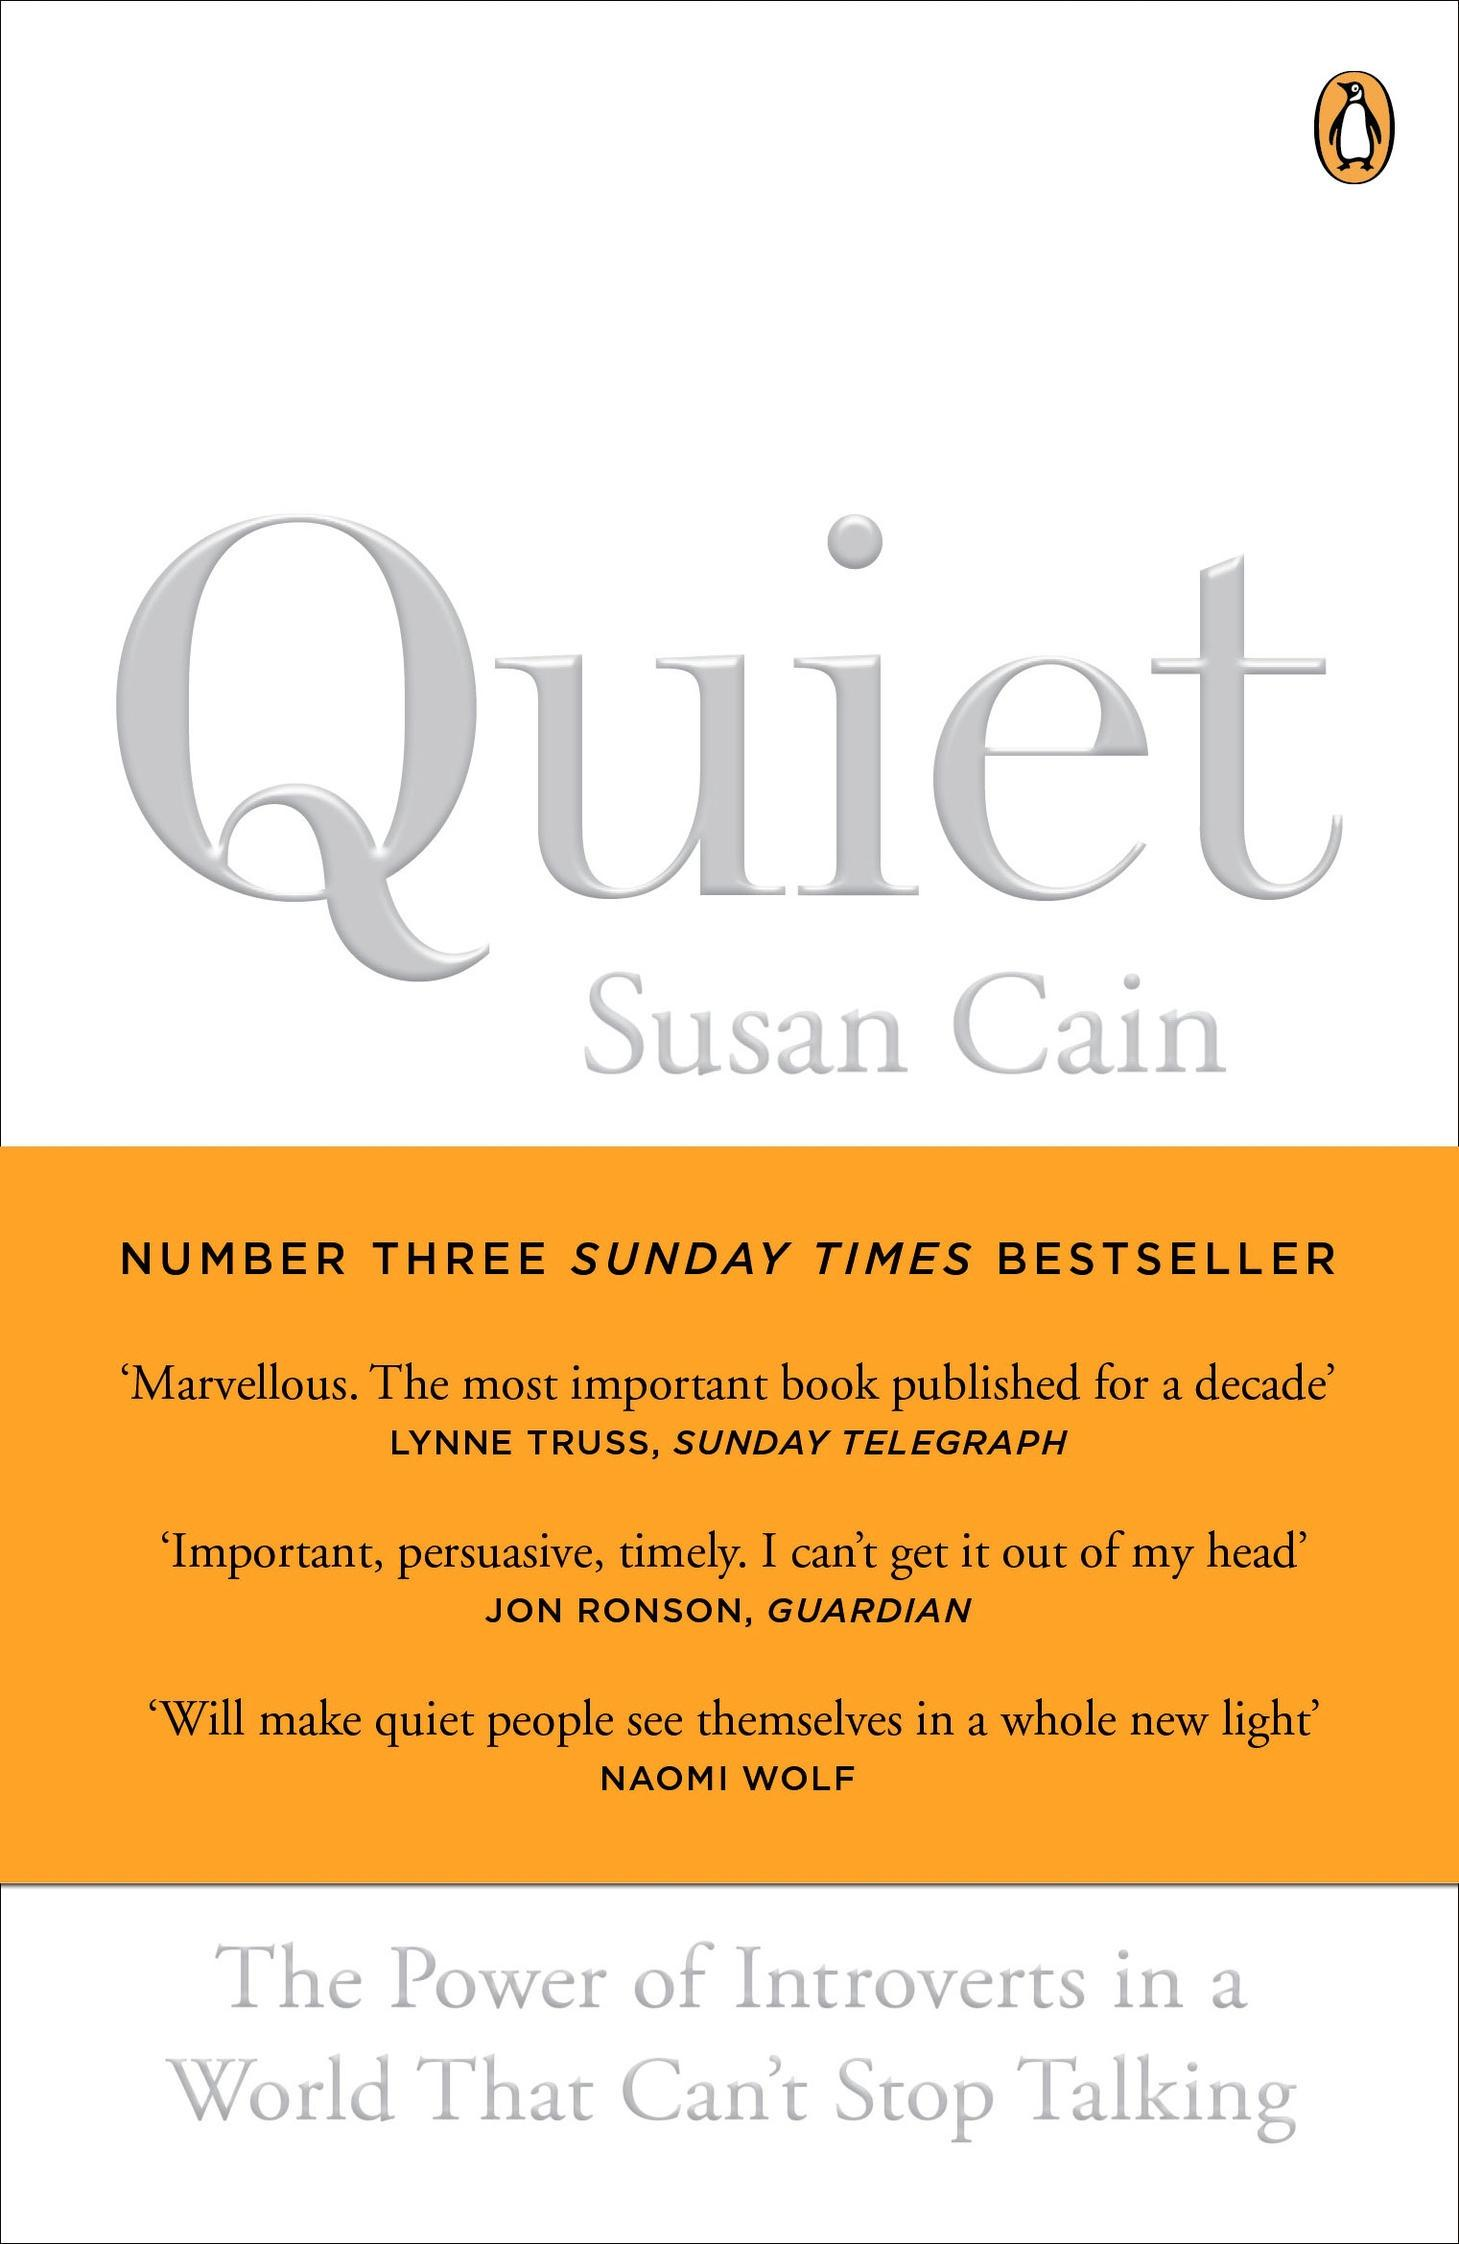 analysis of the power of introverts A self-avowed introvert herself, susan cain is the author of the recently published  book quiet: the power of introverts in a world that can't stop.